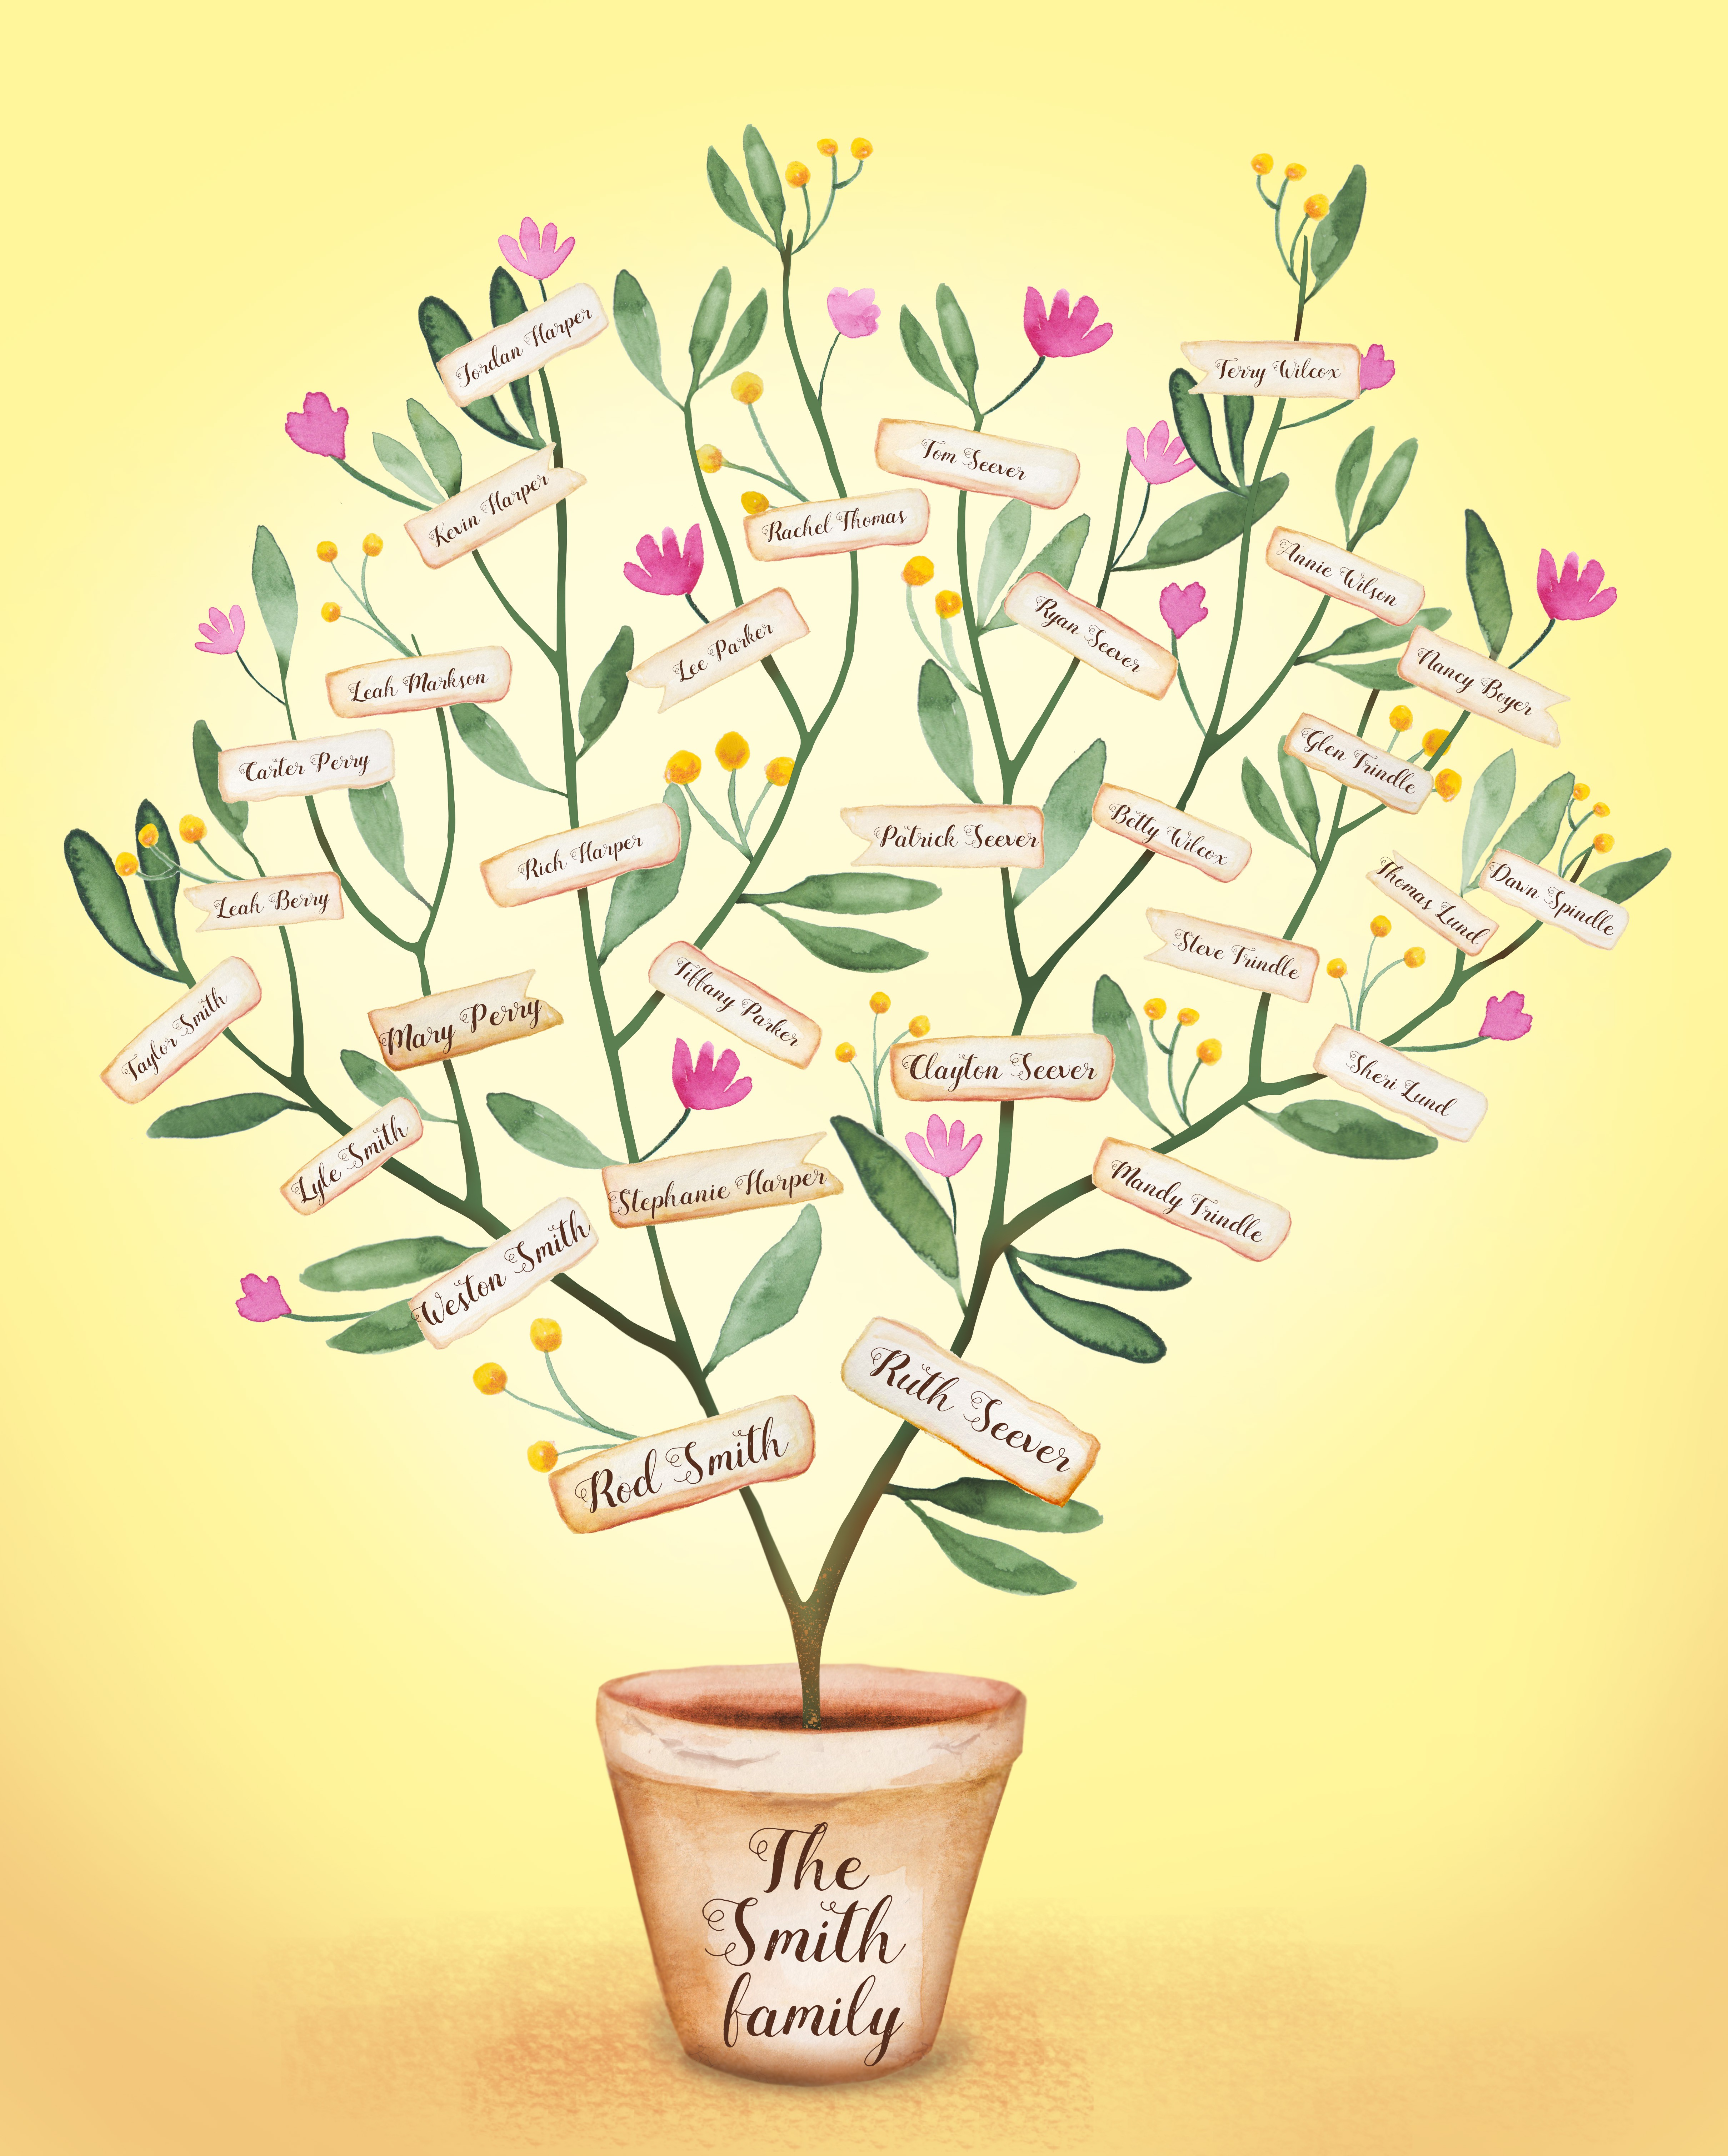 Multiple Winners! Create charming family tree designs for e-commerce company